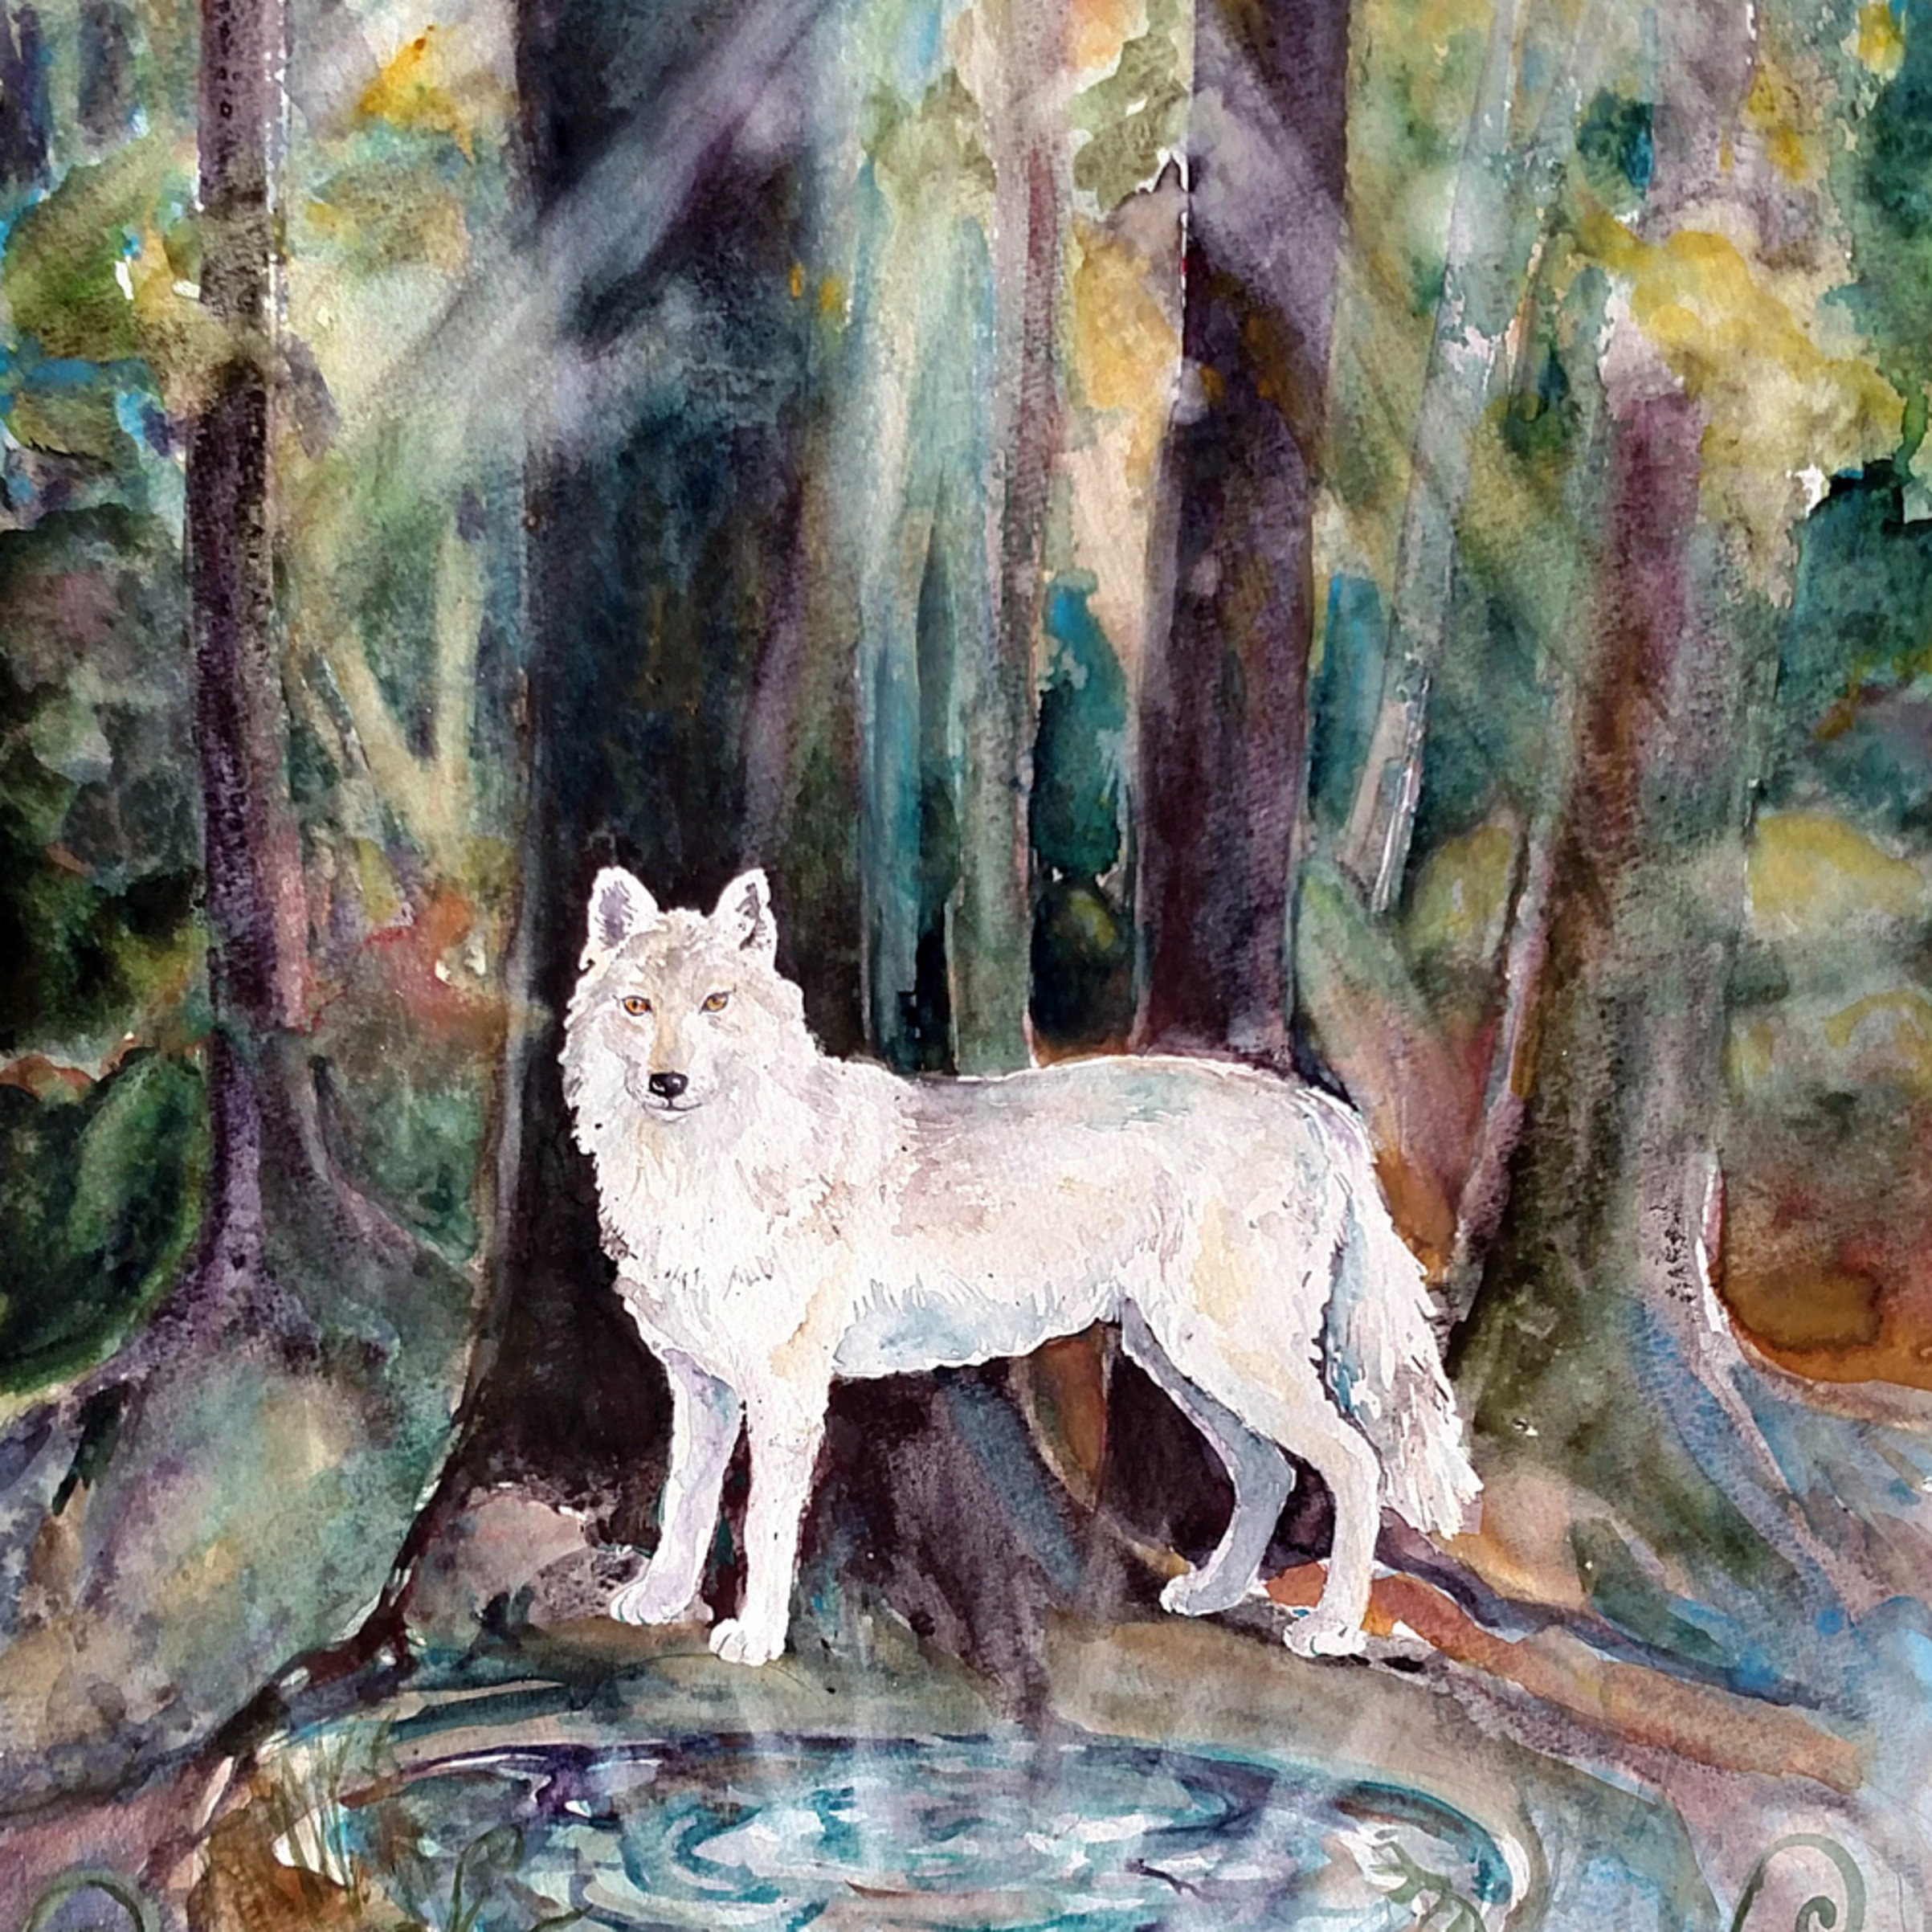 Guardian of three worlds wolf spirit animal naf7vi